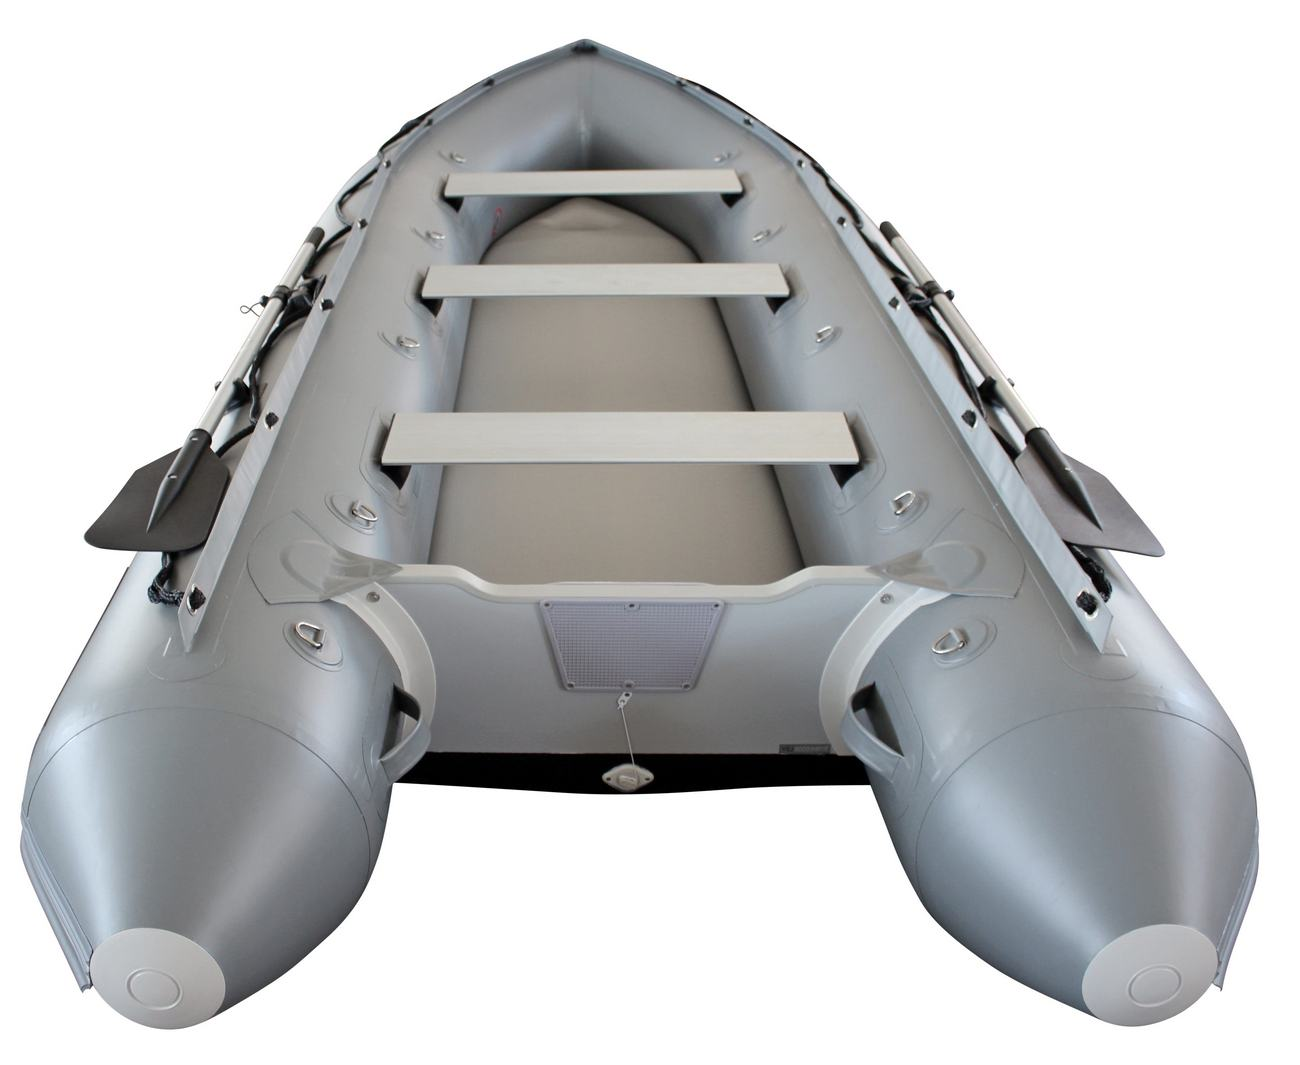 14 Performance Inflatable Kaboat Zk430xl With Keel And